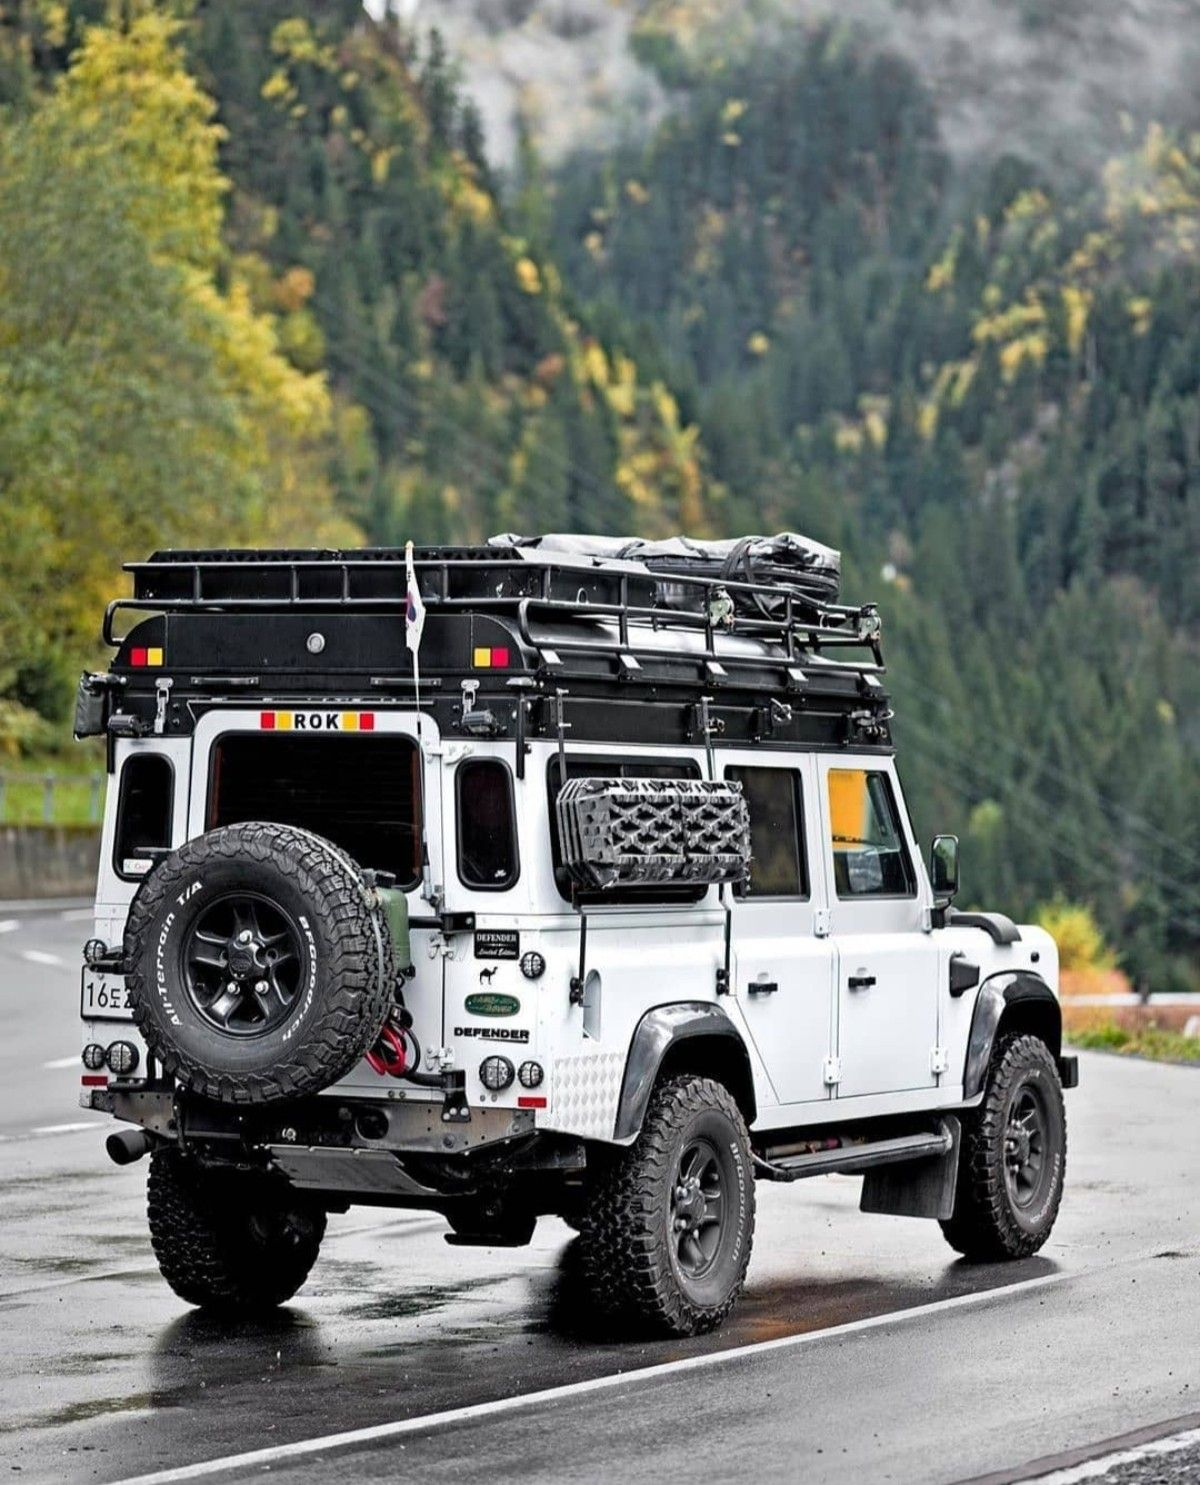 Pin By Alex Sanchez On Land Rover In 2020 Land Rover Defender Expedition Land Rover Defender Land Rover Defender Camping